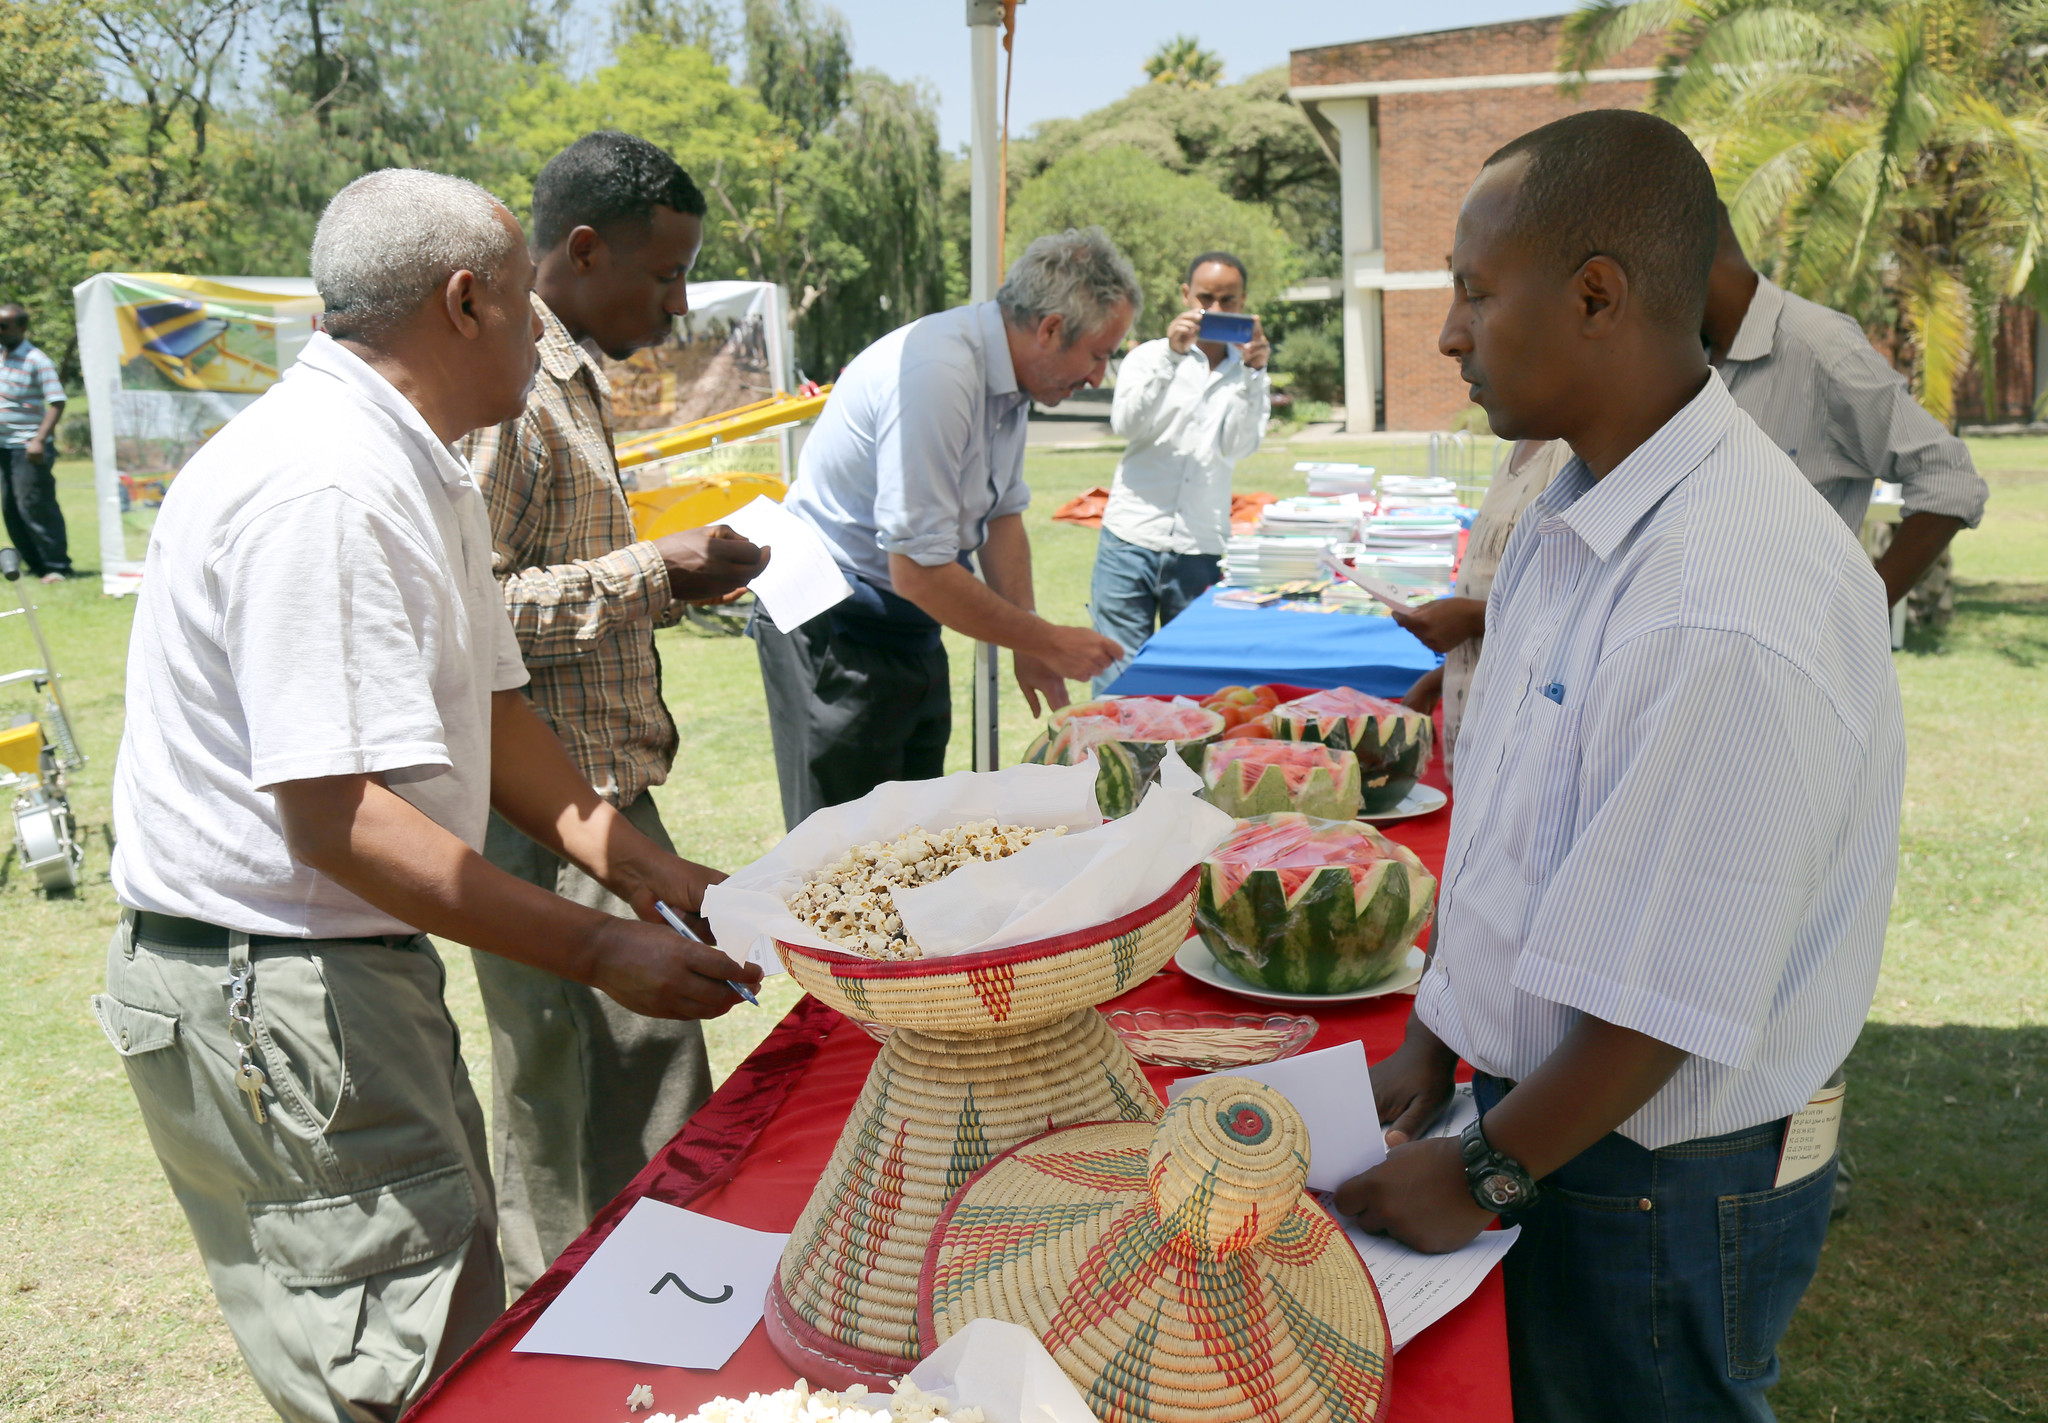 Ranking popcorn, tasting watermelons at the Farmers' Horticultural Day